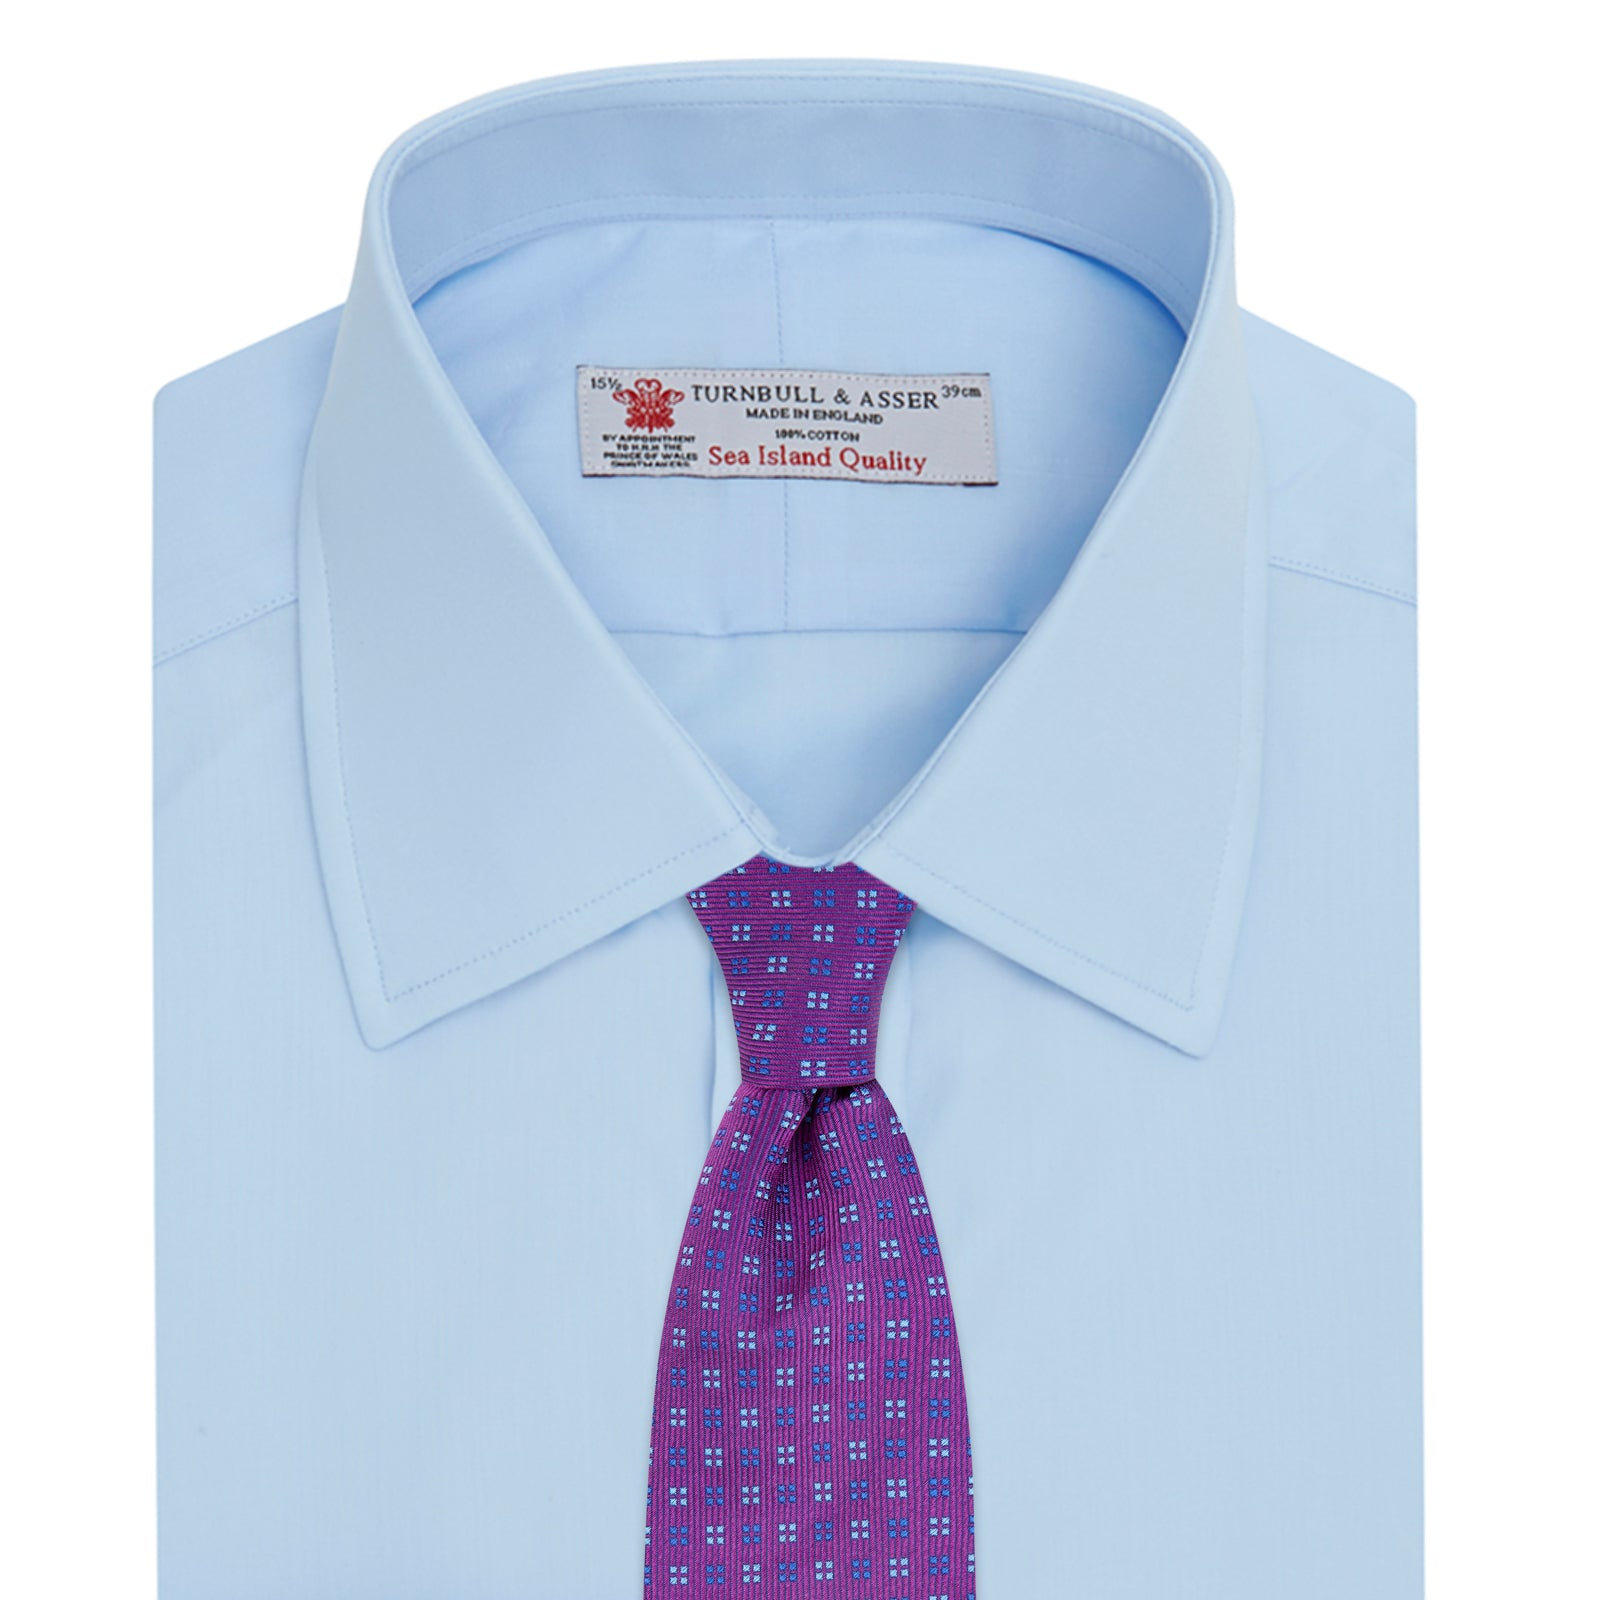 Light Blue Sea Island Quality Cotton Shirt with T&A Collar and Double Cuffs